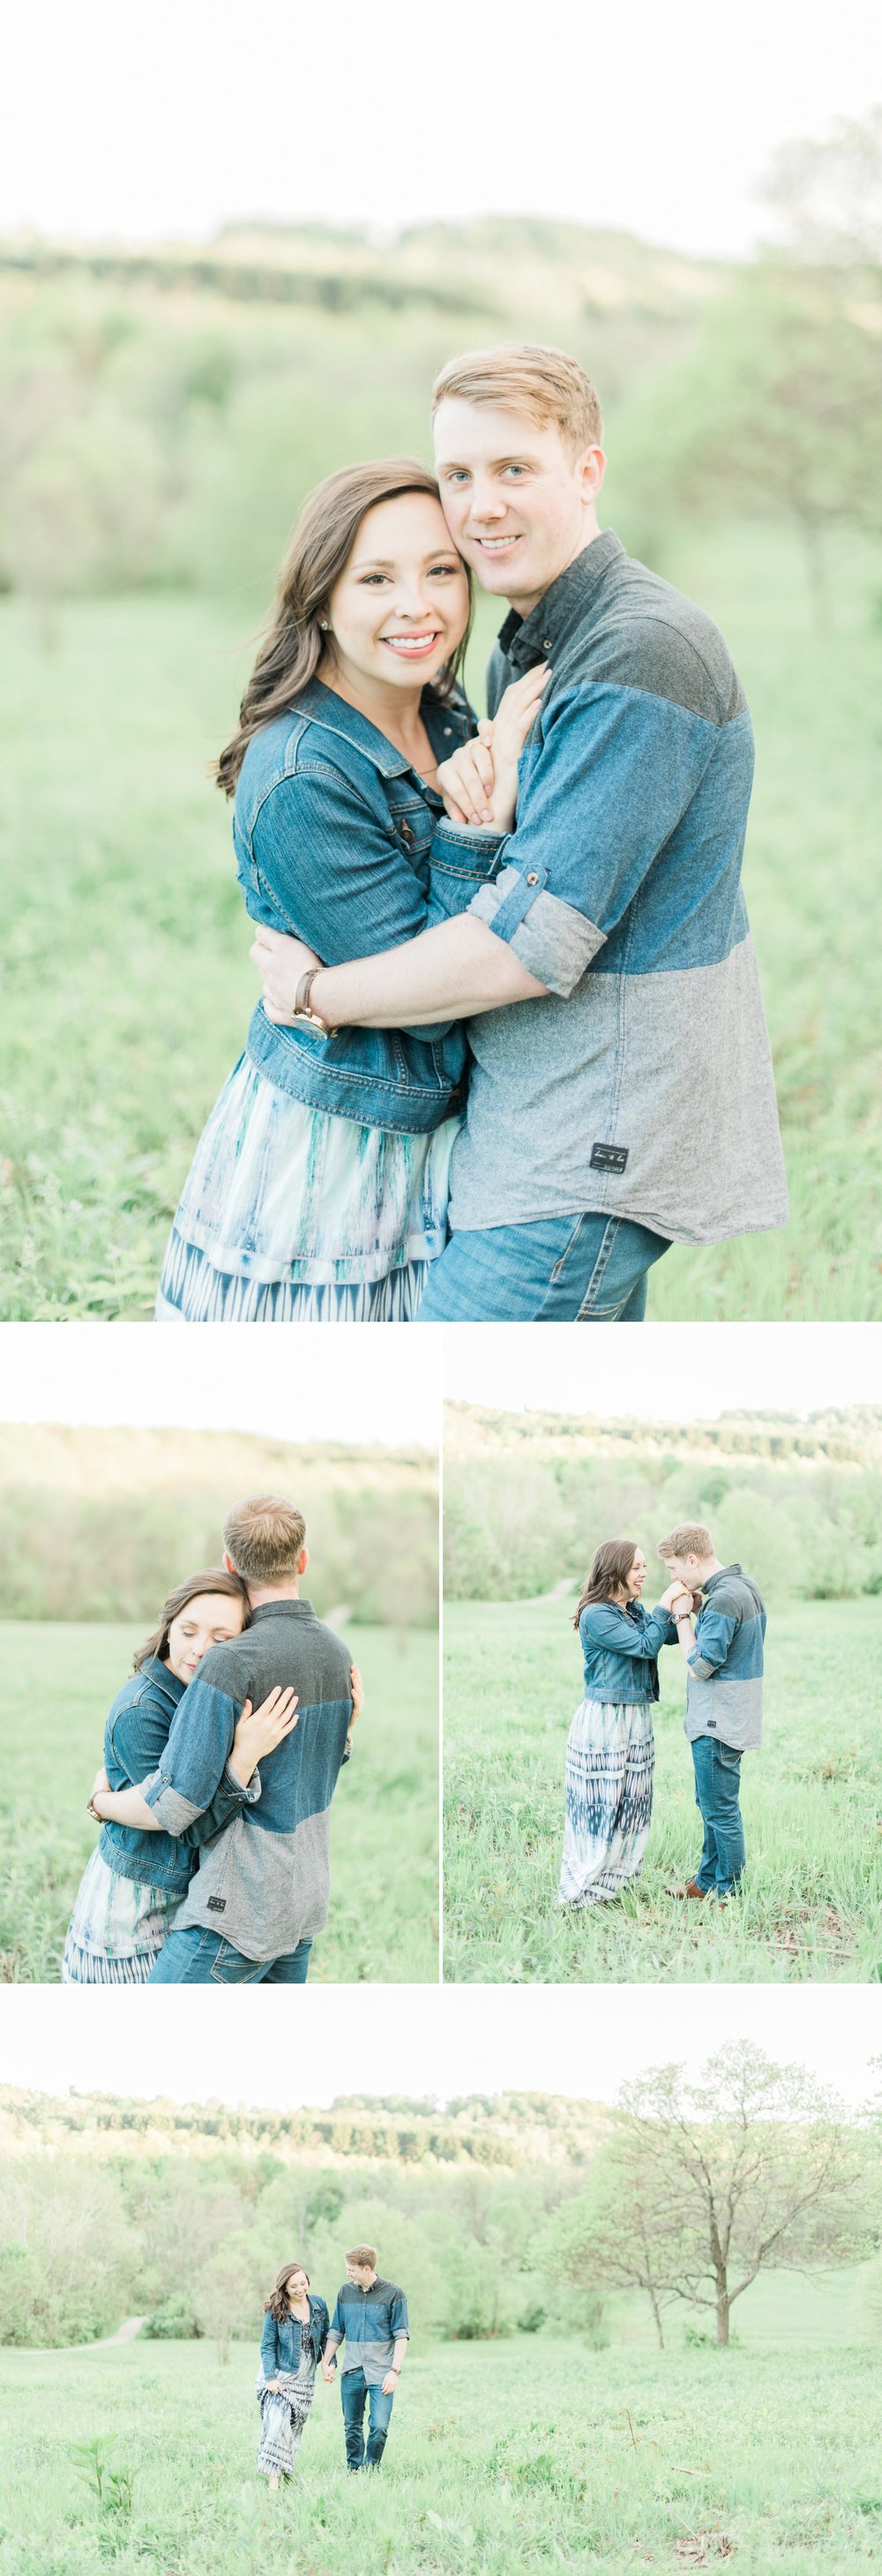 chestnut-ridge-metro-park-engagement-carroll-ohio-50.jpg